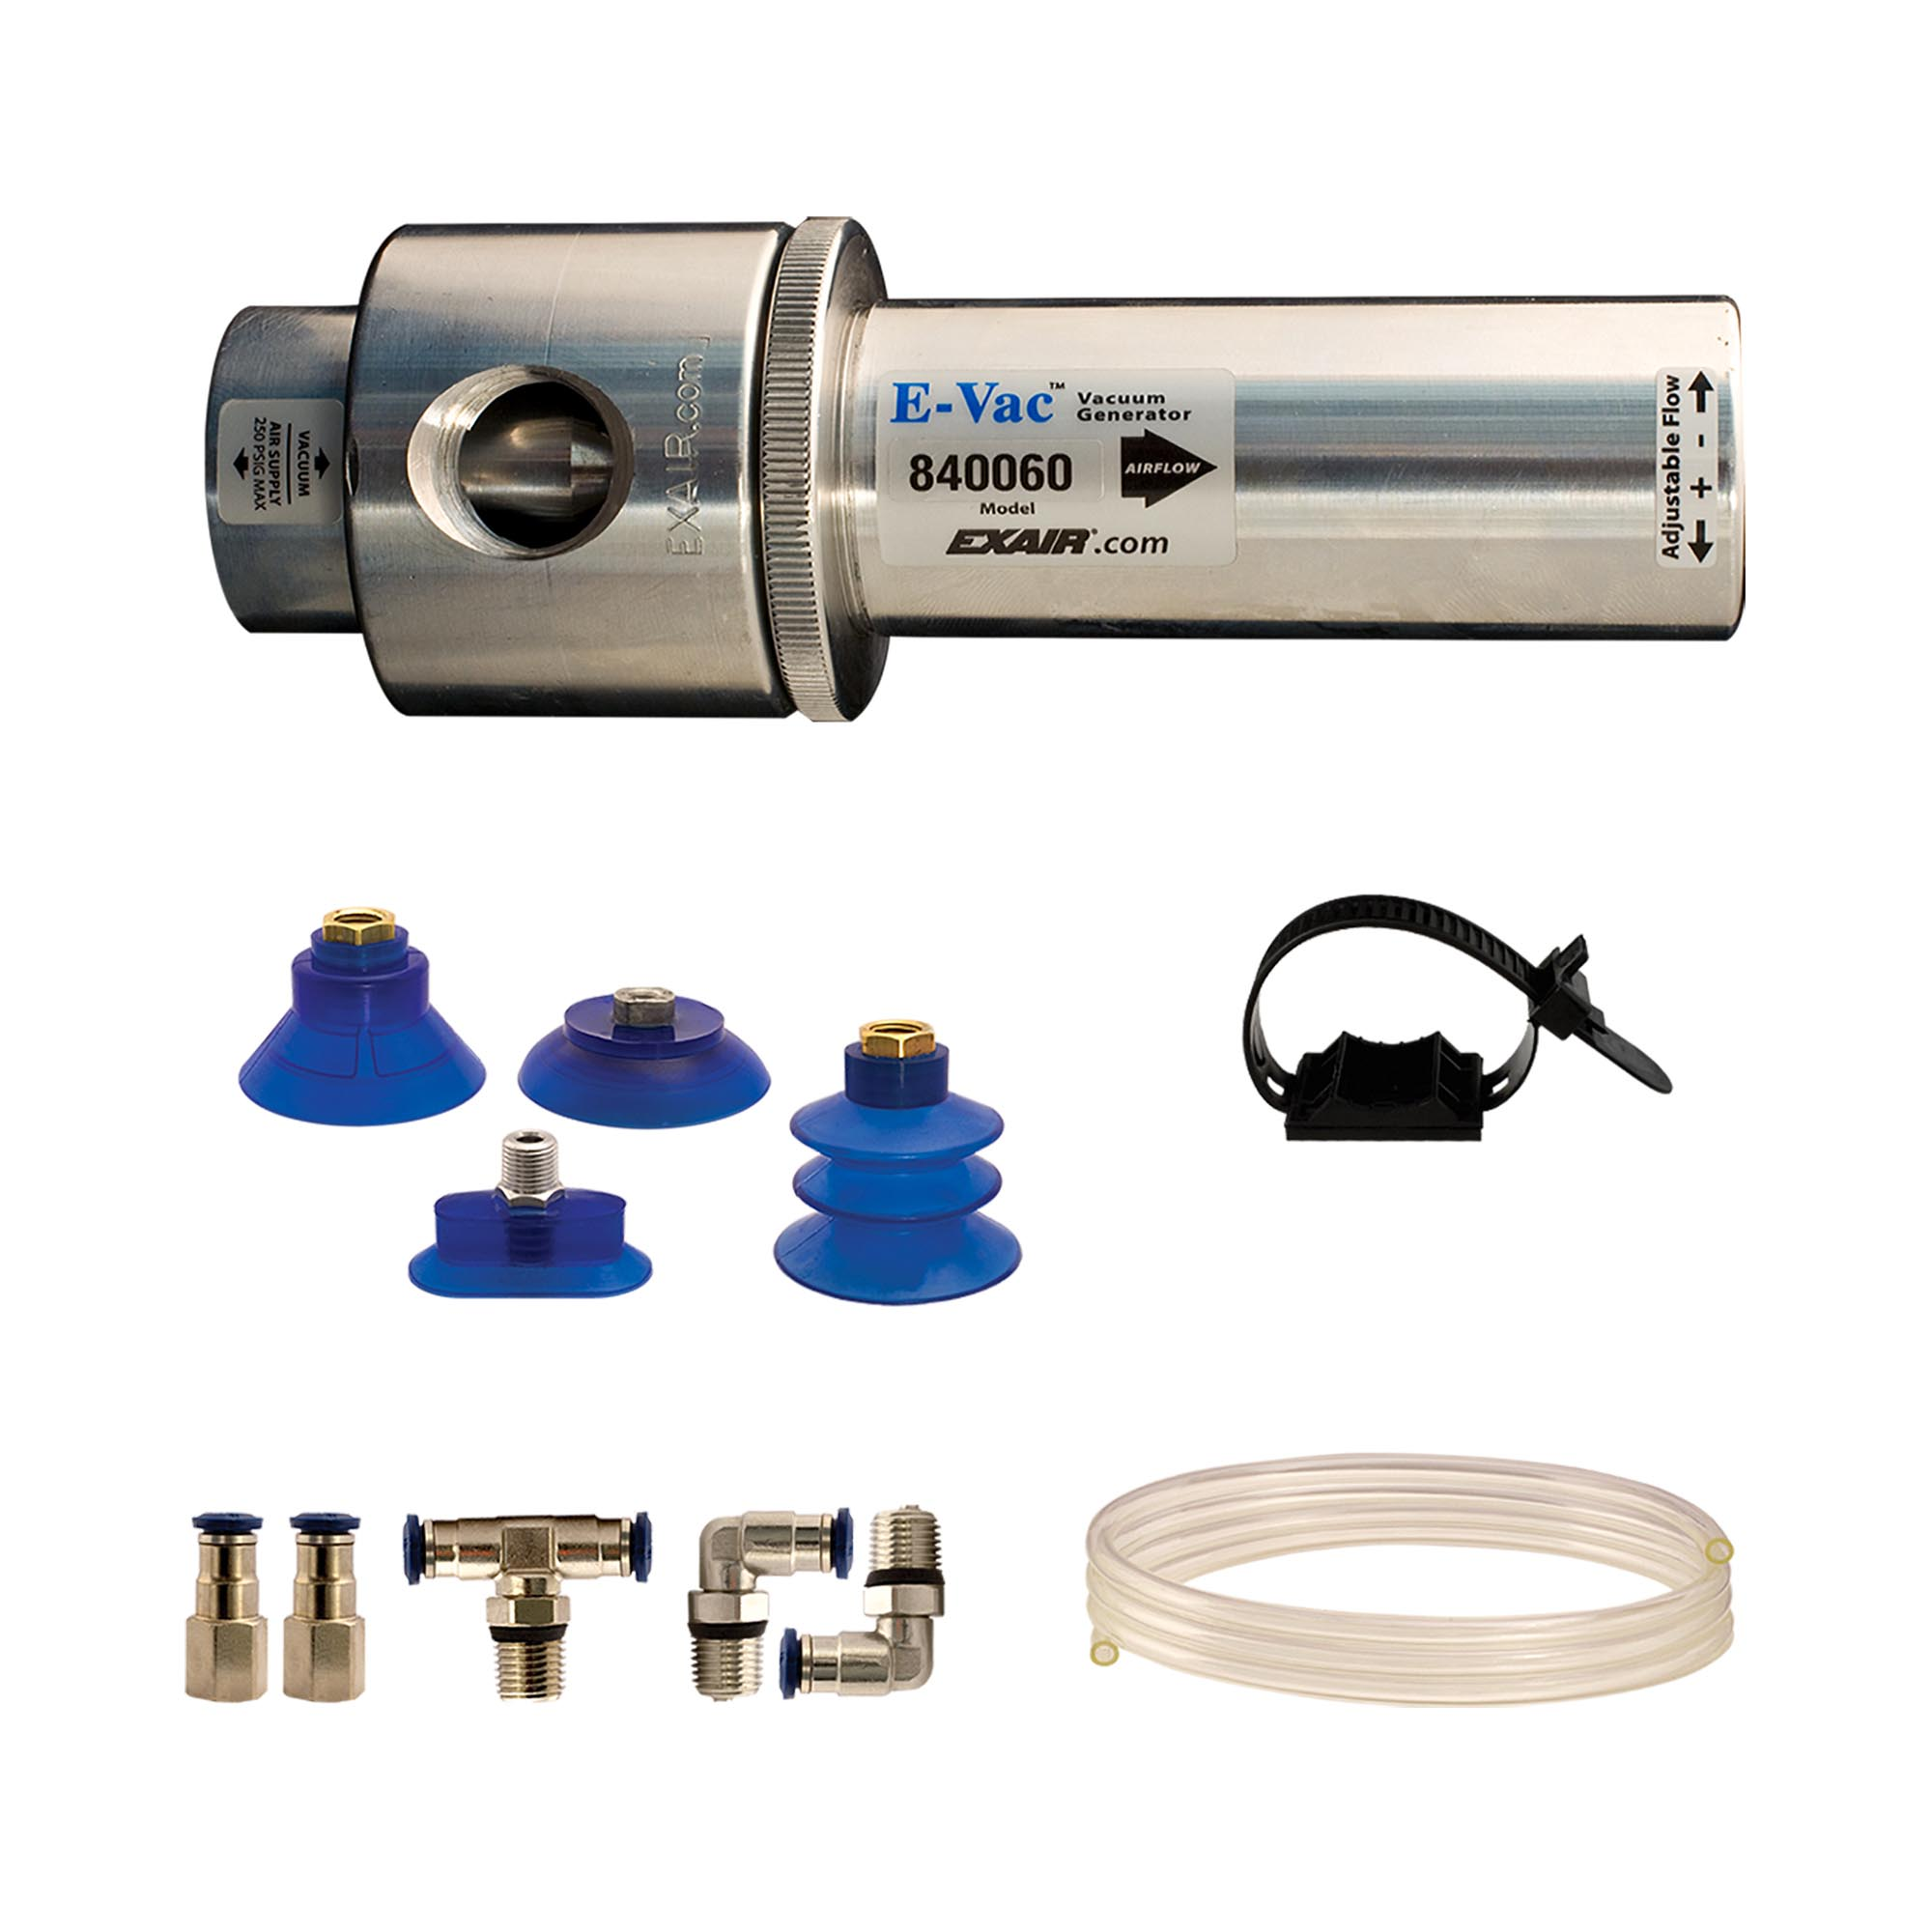 An Adjustable E-Vac kit includes suction cups, fittings, muffler (not shown), vacuum tube and mounting strap.